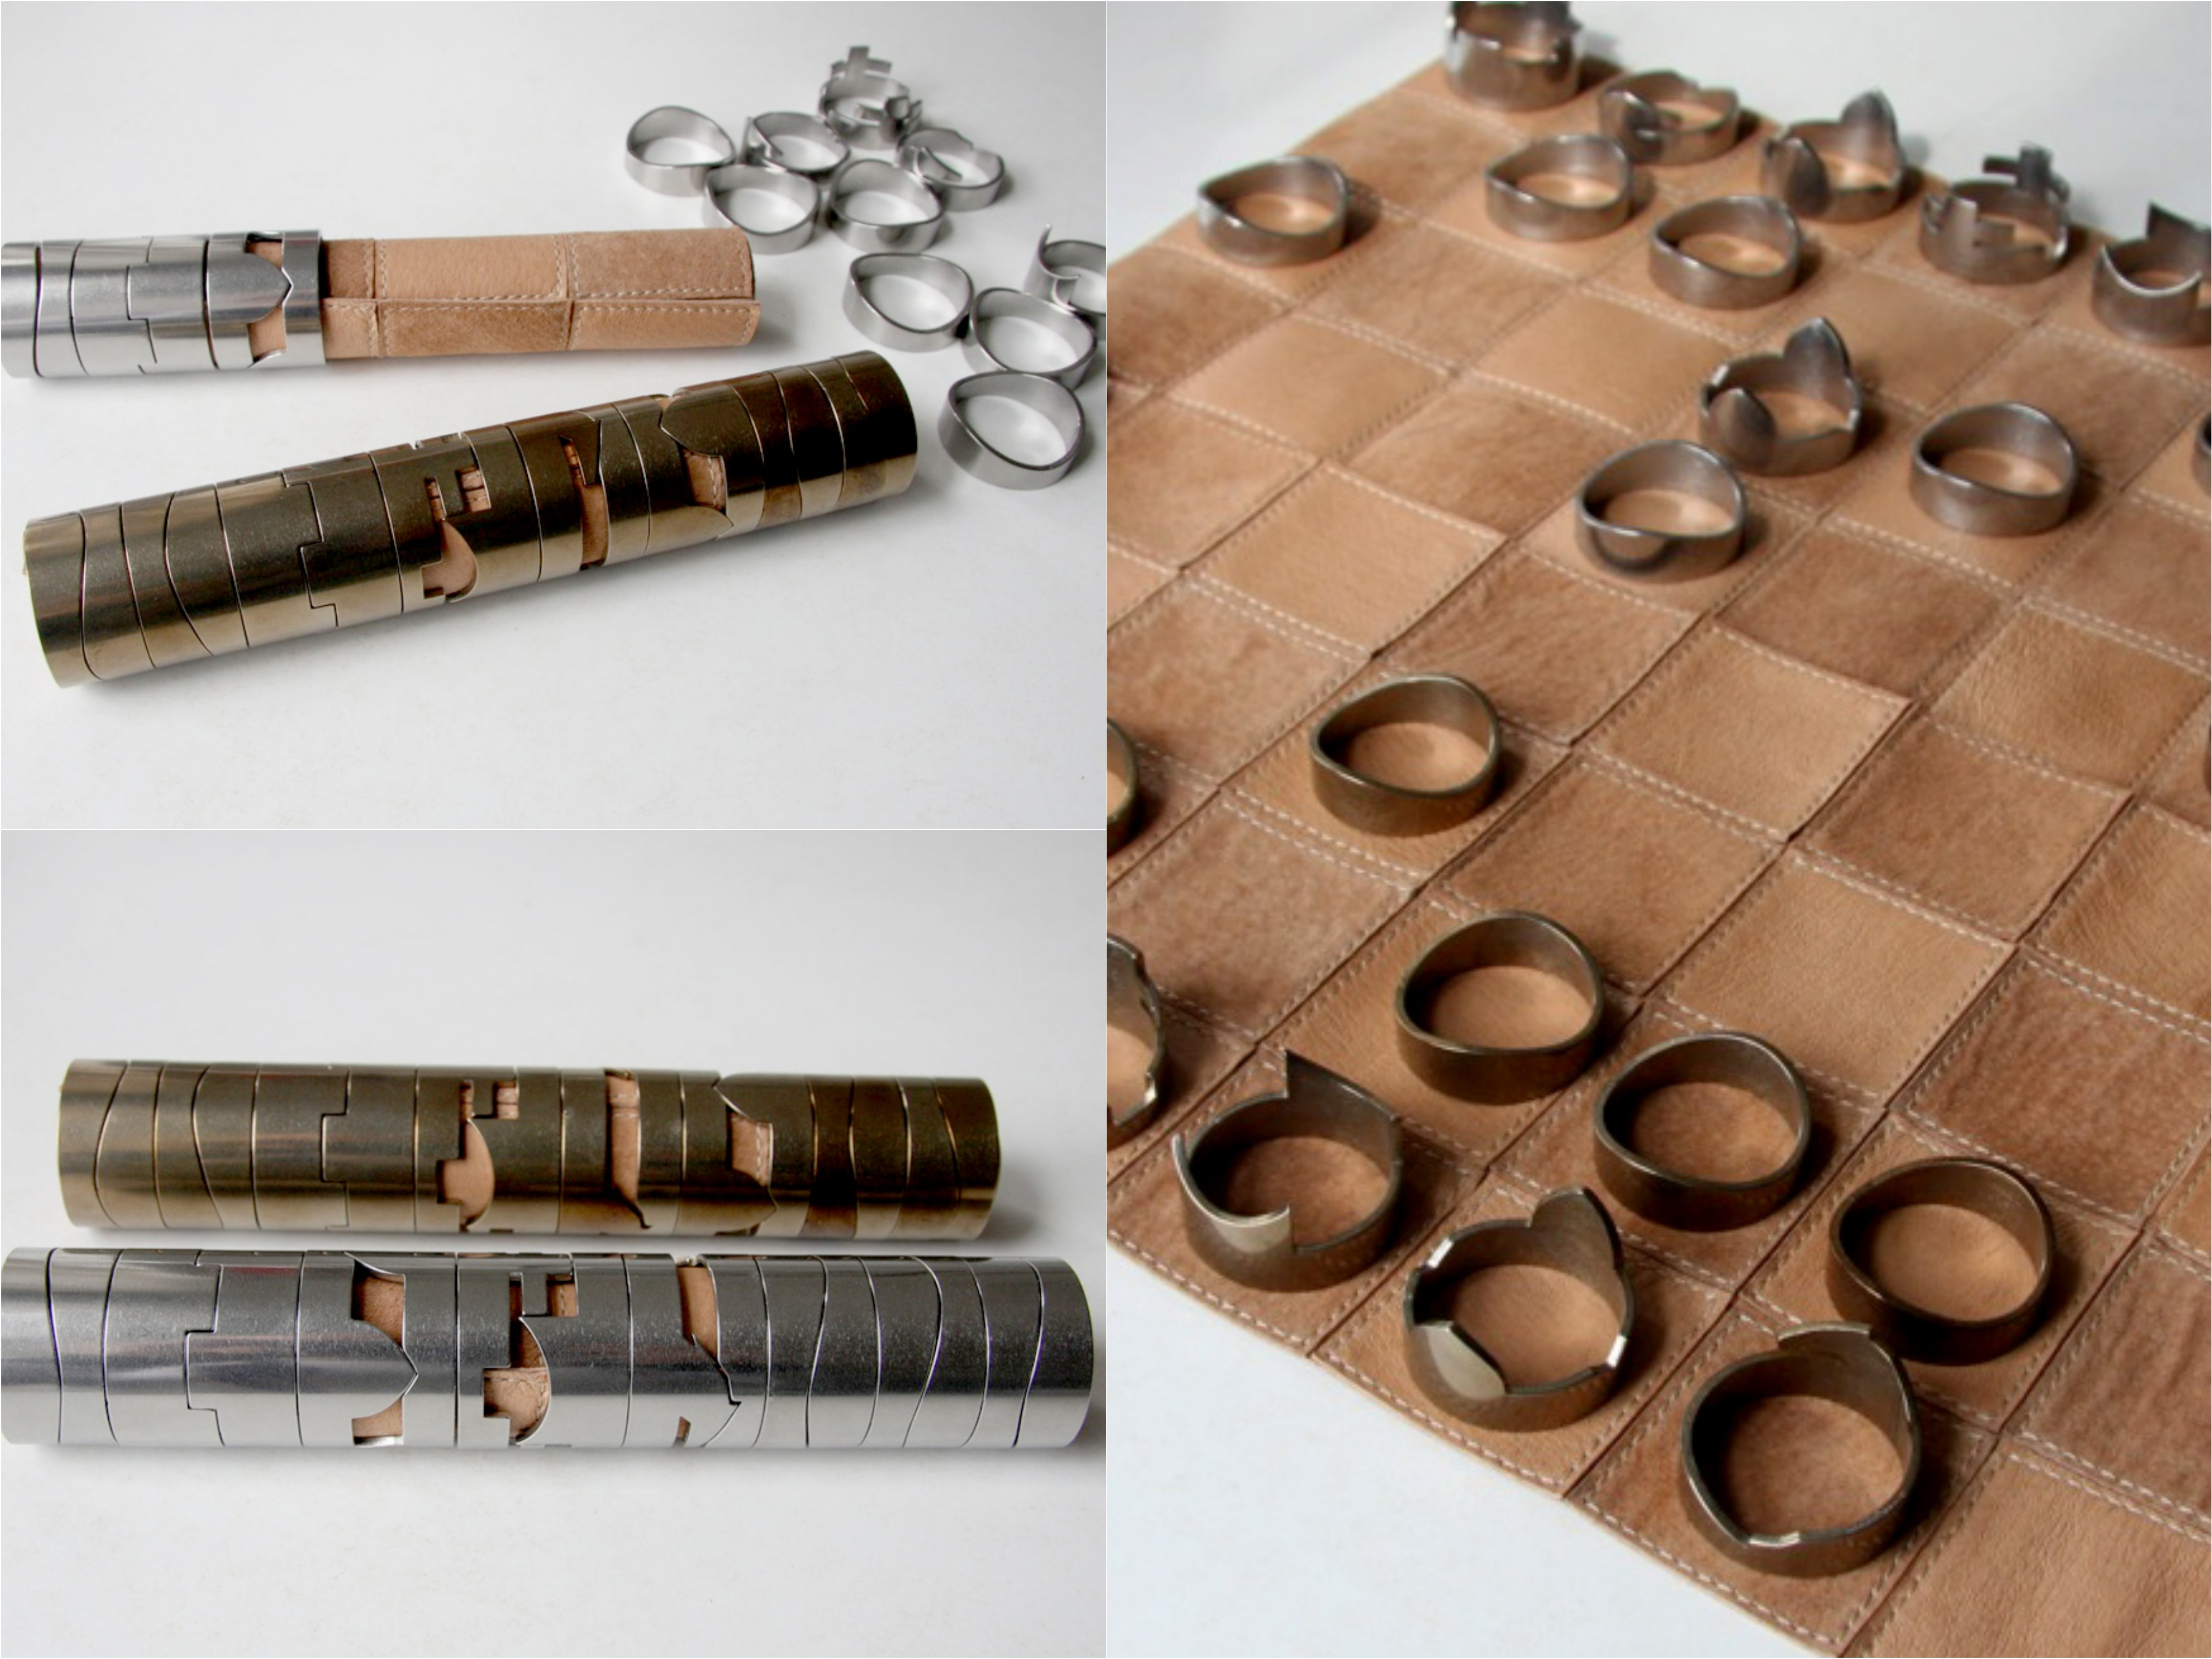 rawstudio chess set